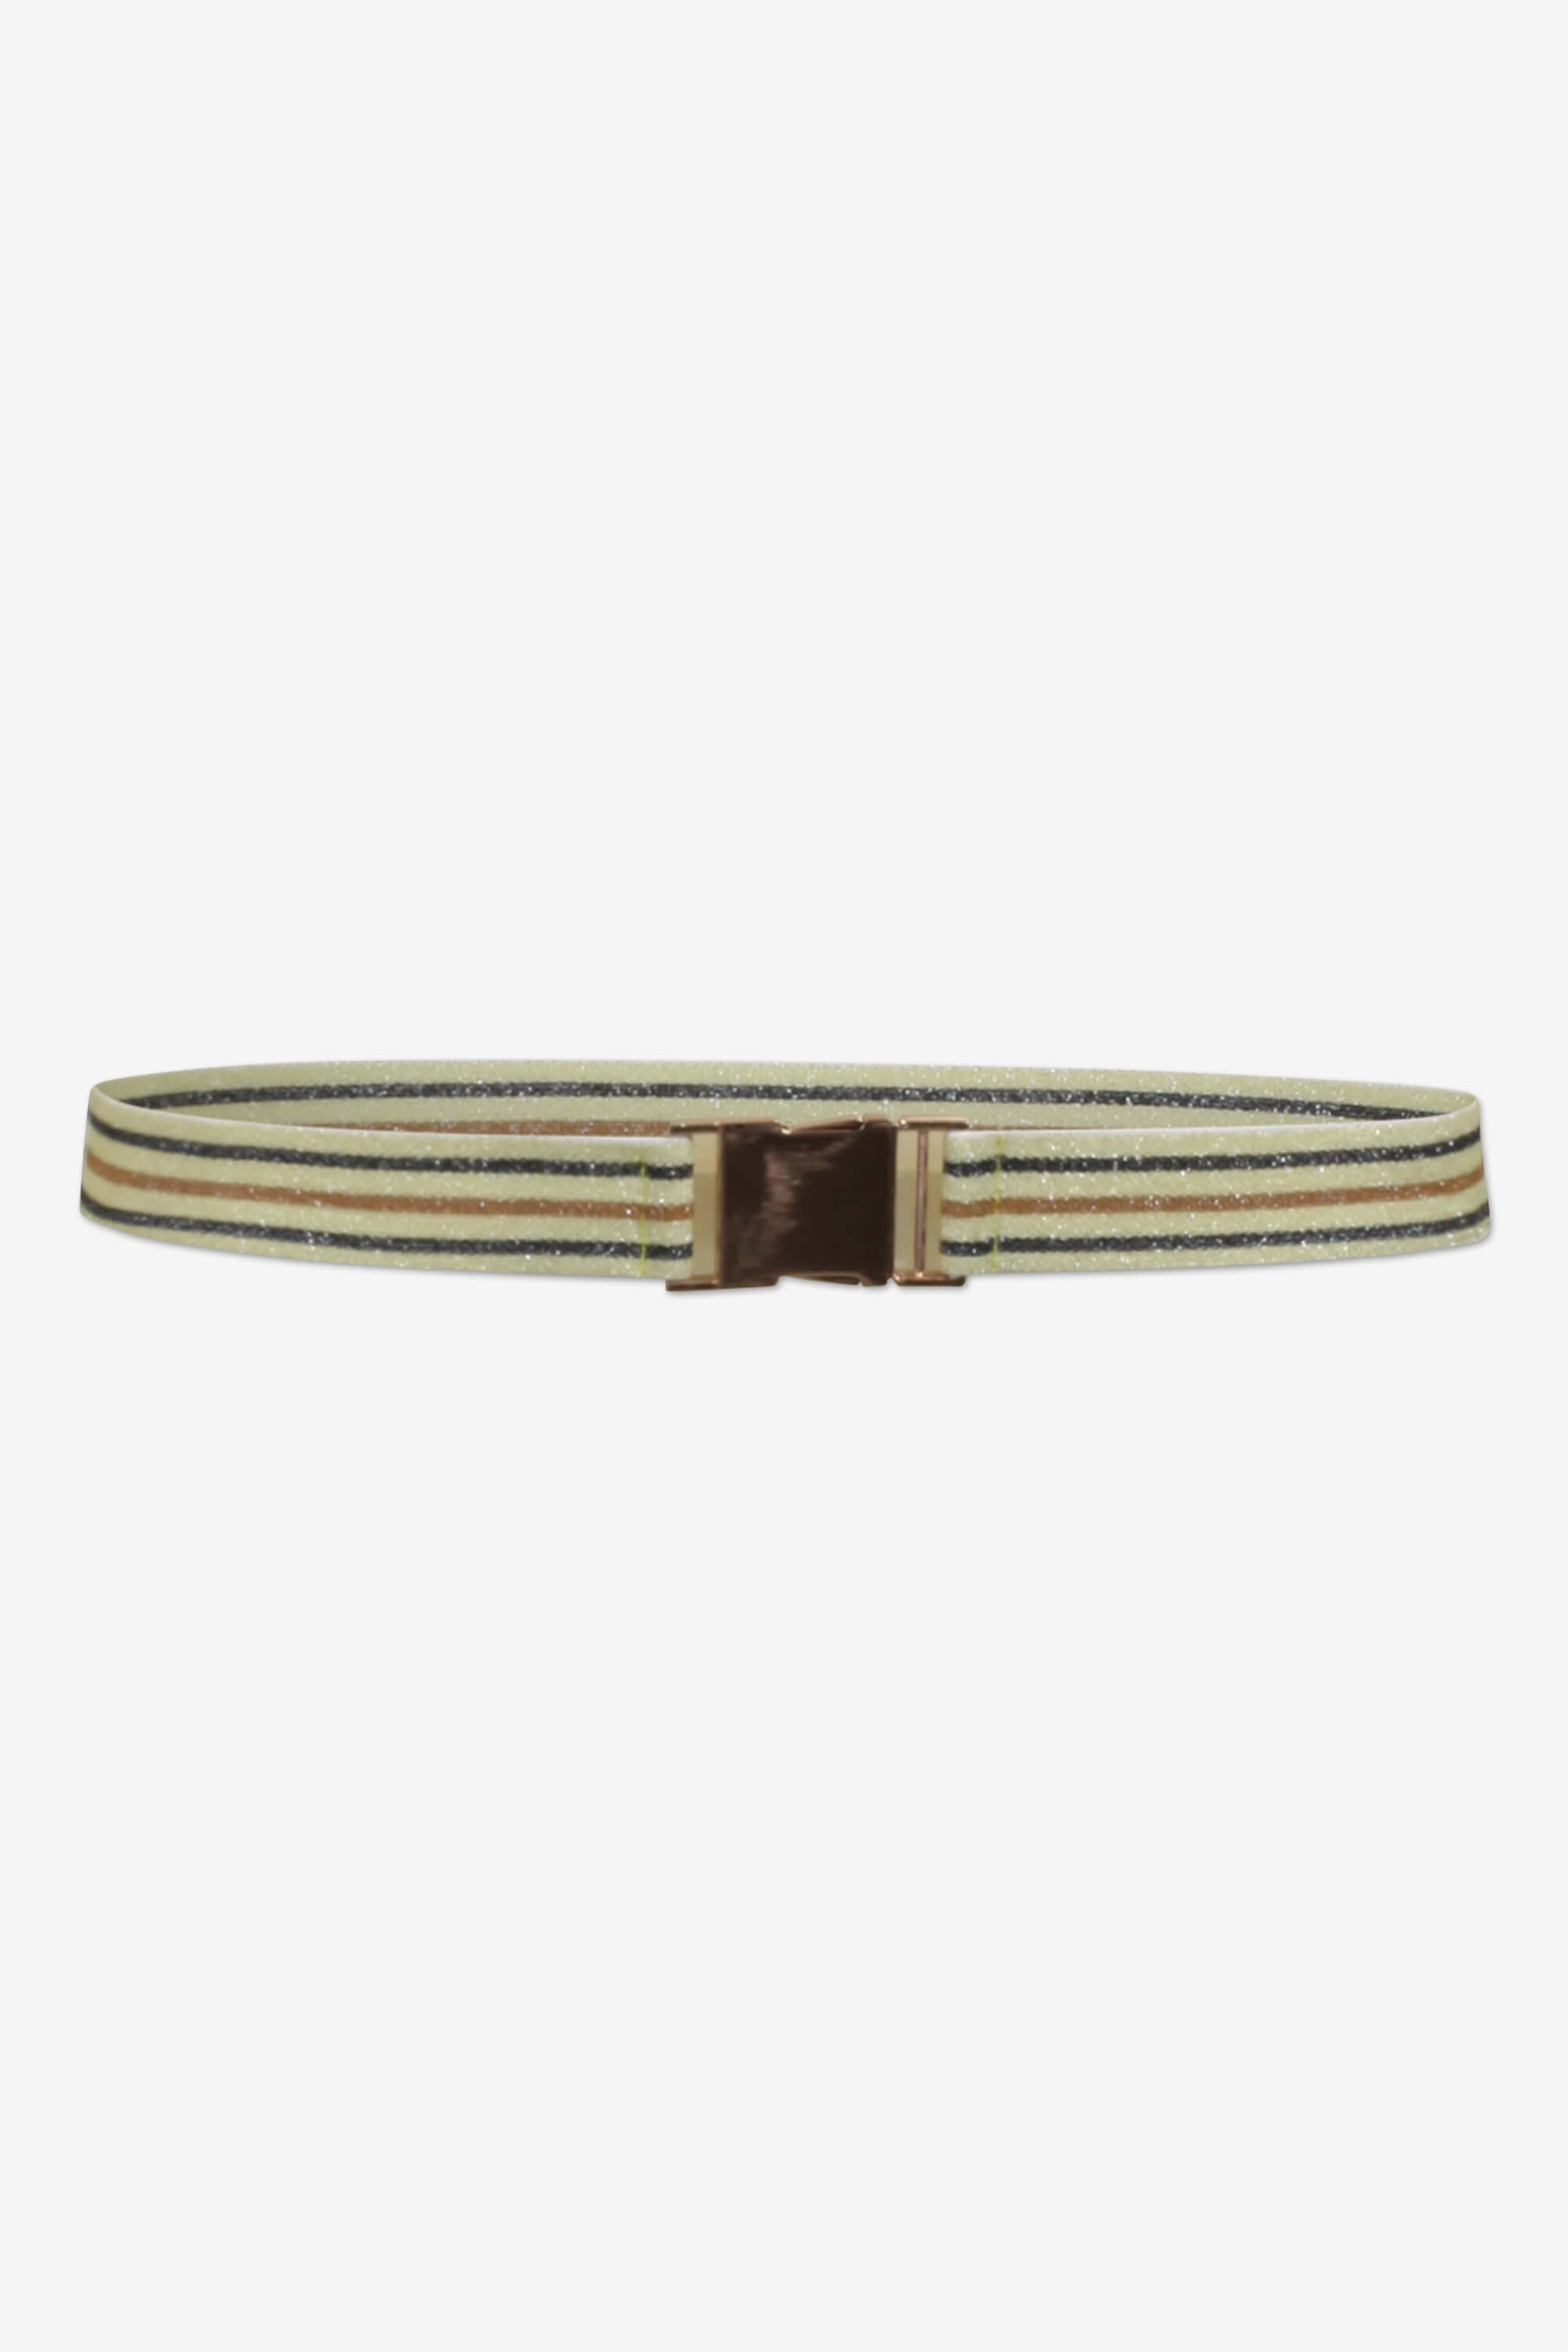 BUP Lilia belt in yellow, black, brown